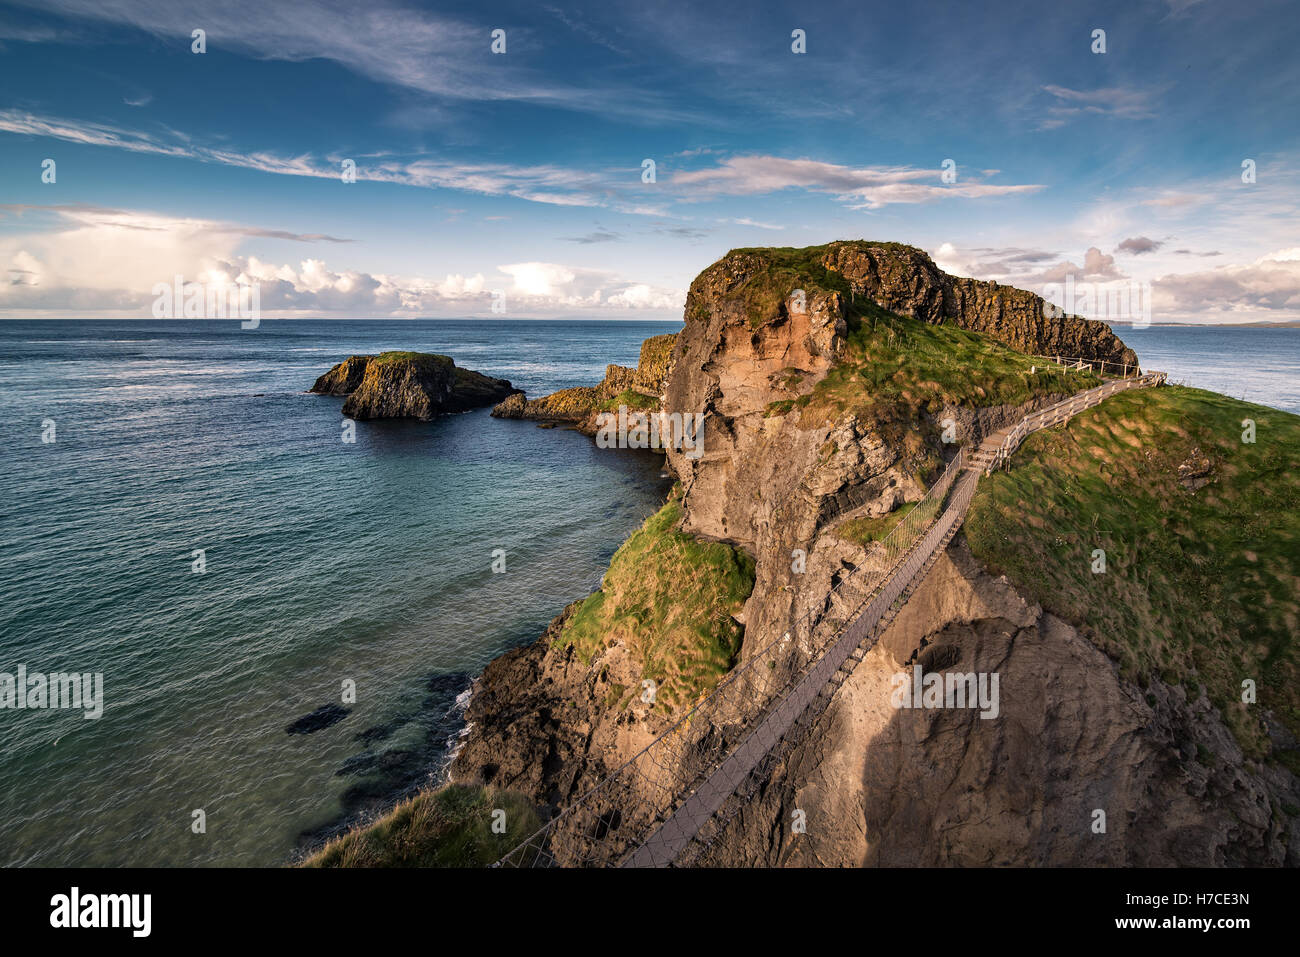 Carrick-a-rede  rope bridge, Famous place in Northern Ireland. - Stock Image